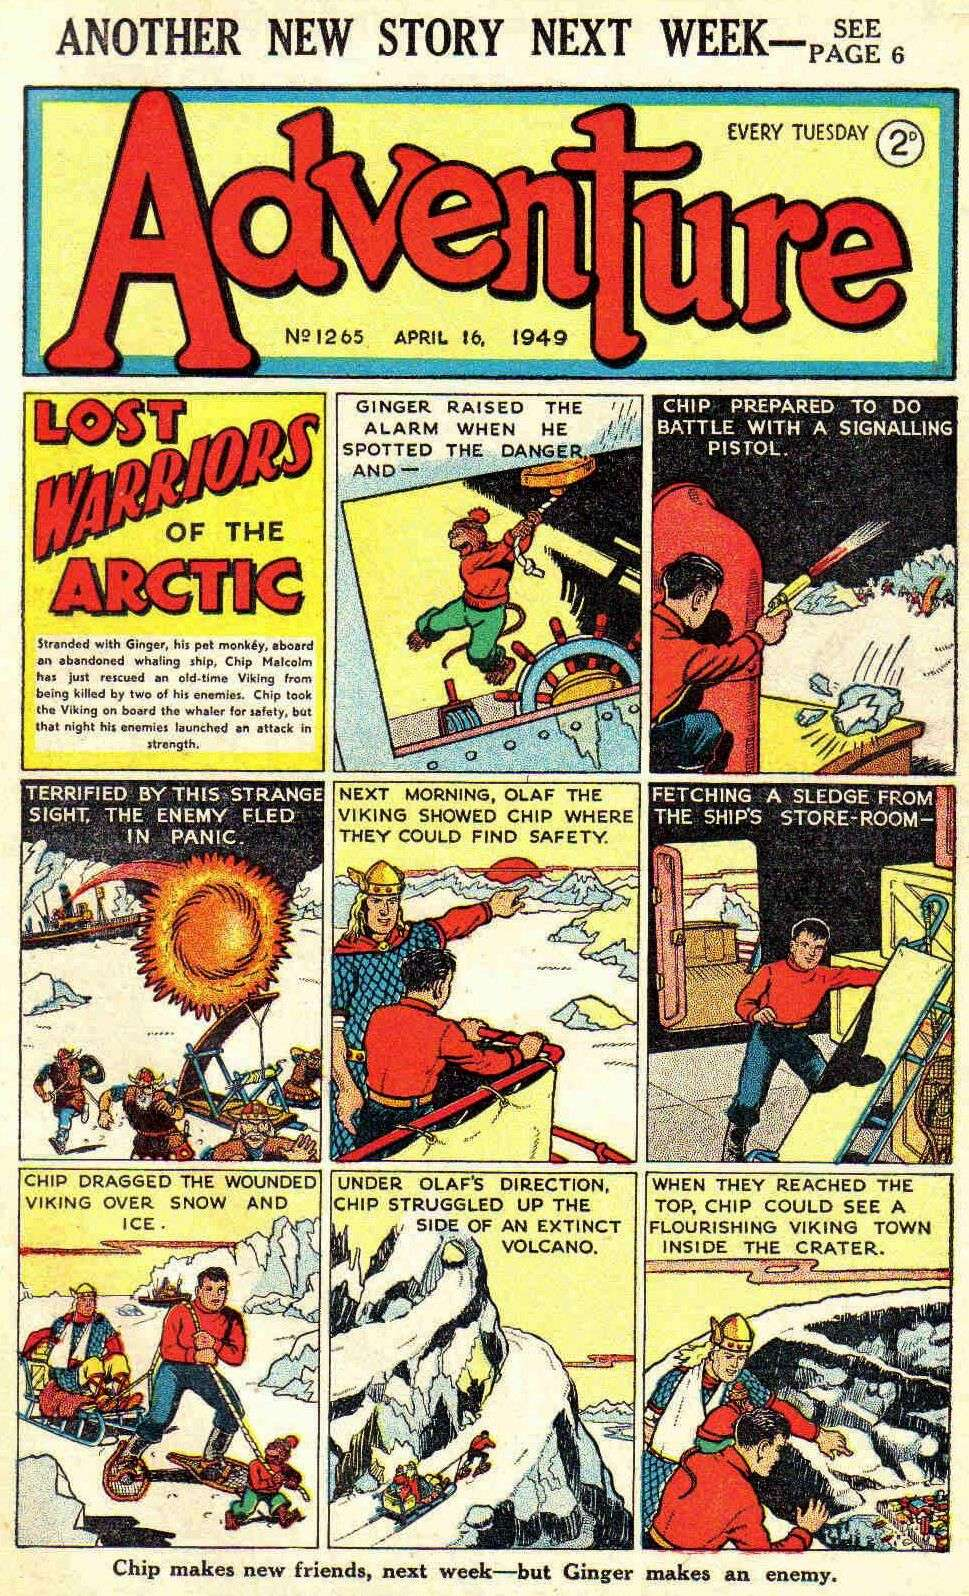 Comic Book Cover For Adventure #1265